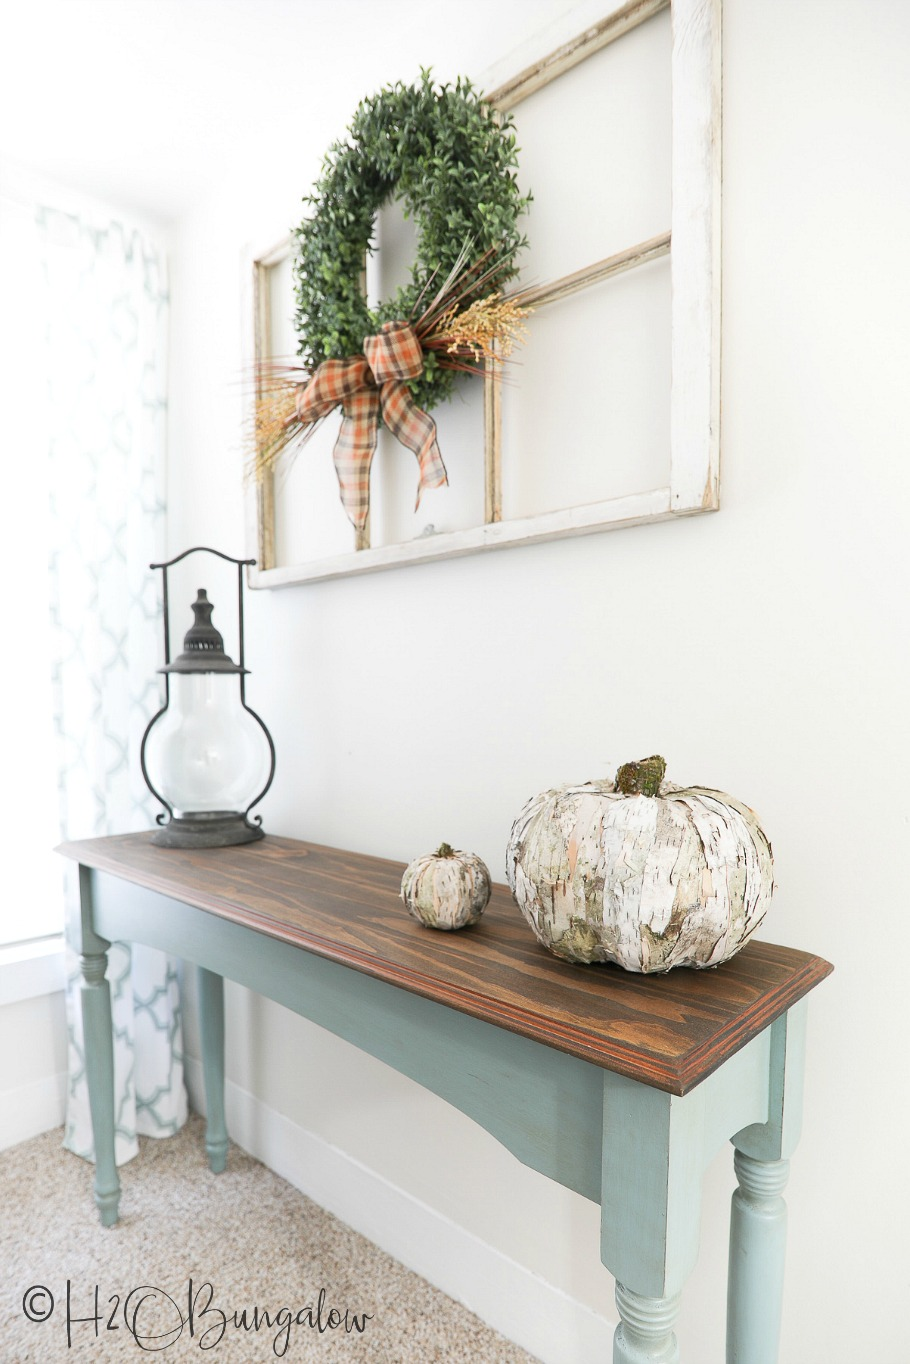 Birch bark pumpkin sitting on console table with lantern and box wreath hanging above on old window.